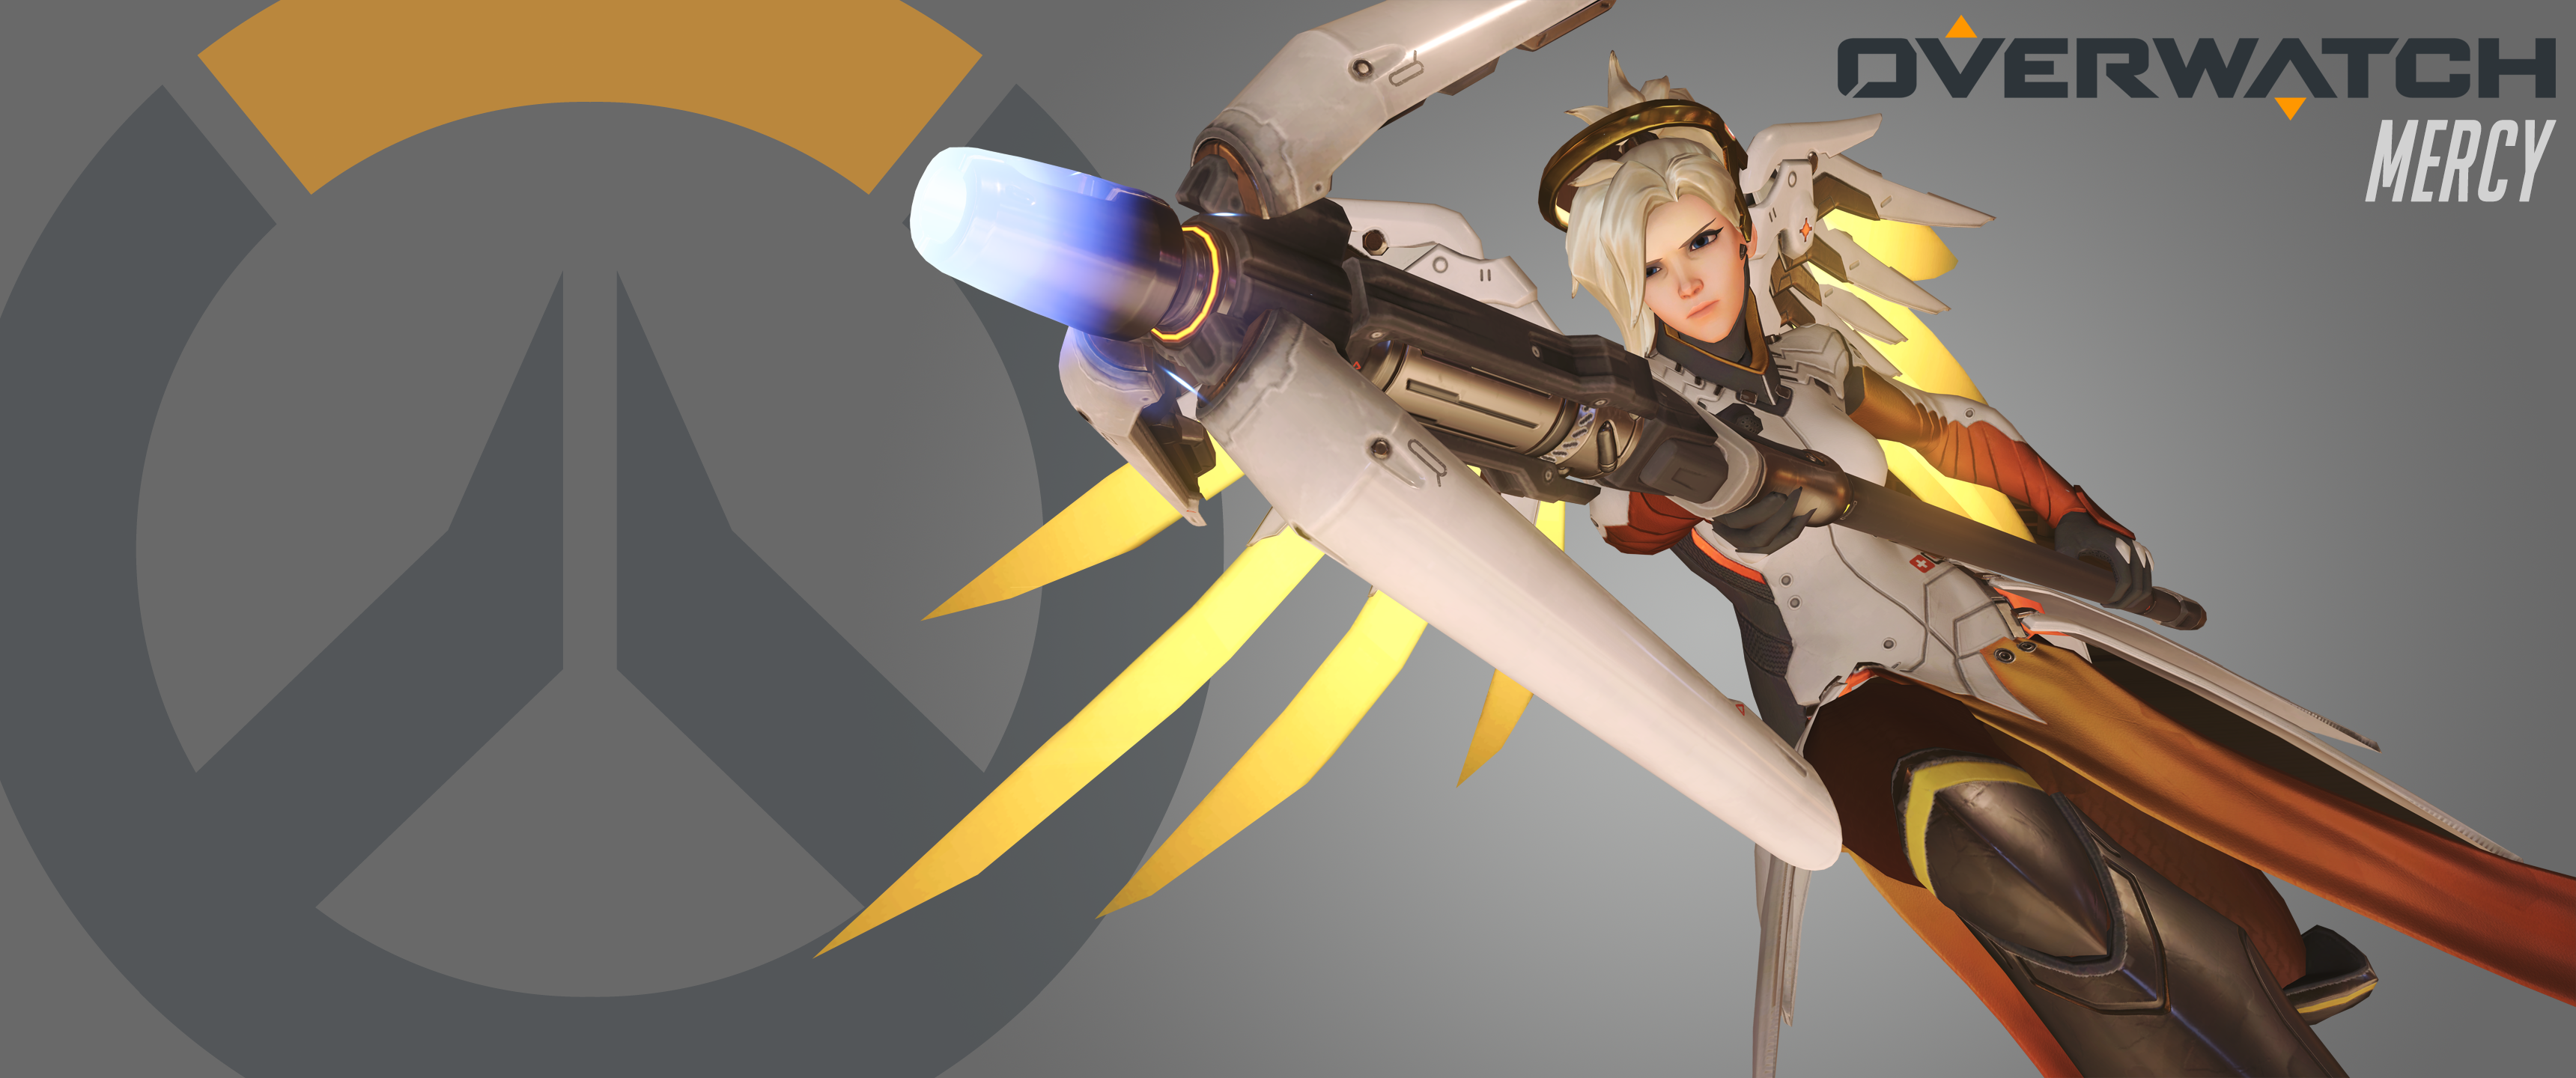 Mercy Wallpaper 219 3440x1440 By Coolboy007101